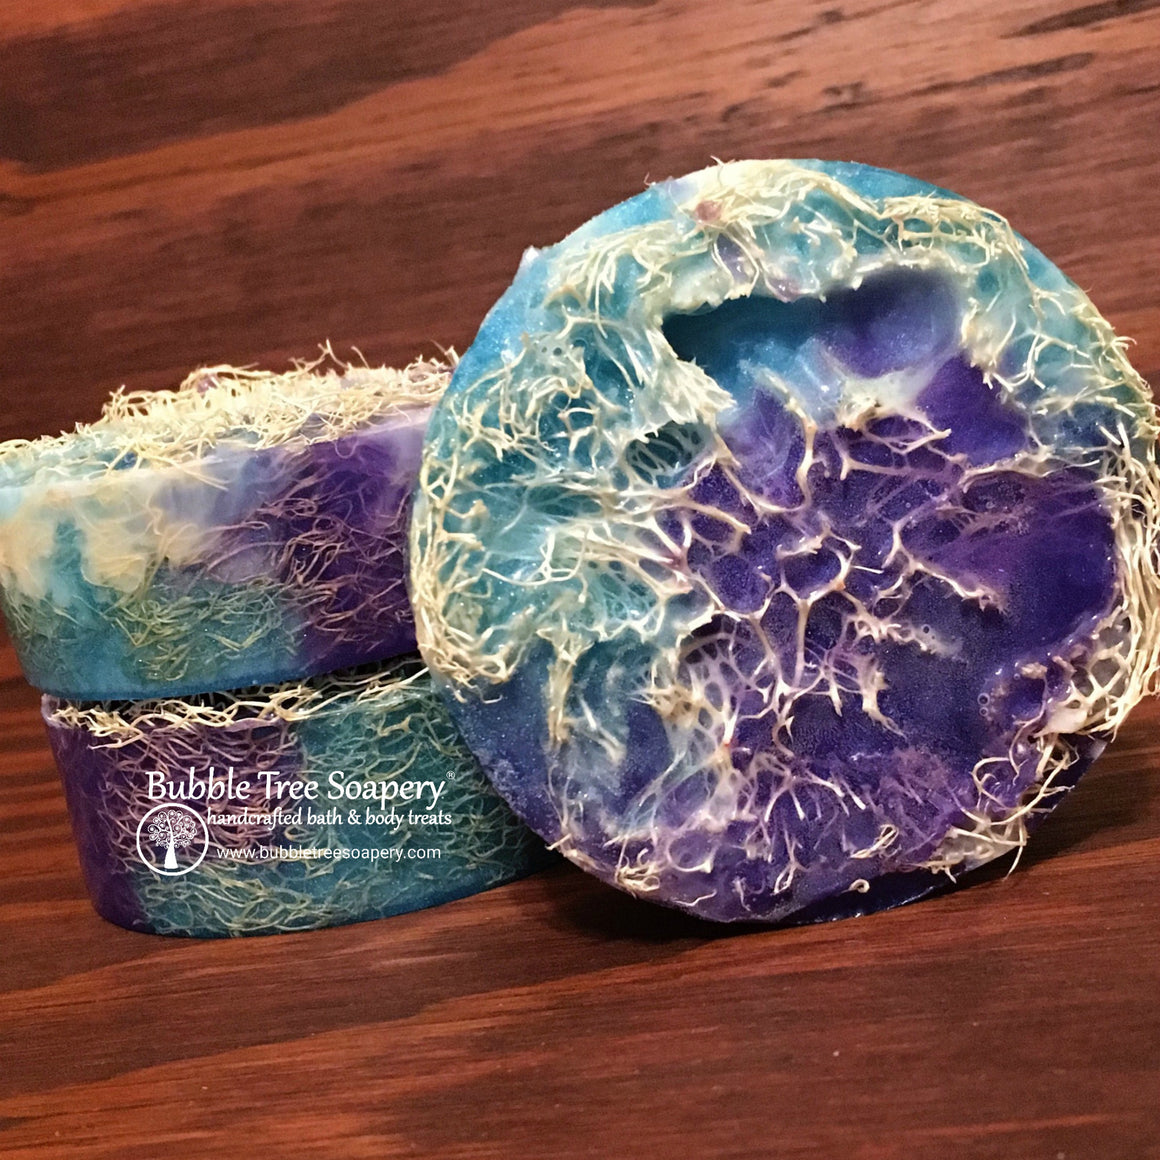 Huckleberry Loofah Soap | Bubble Tree Soapery